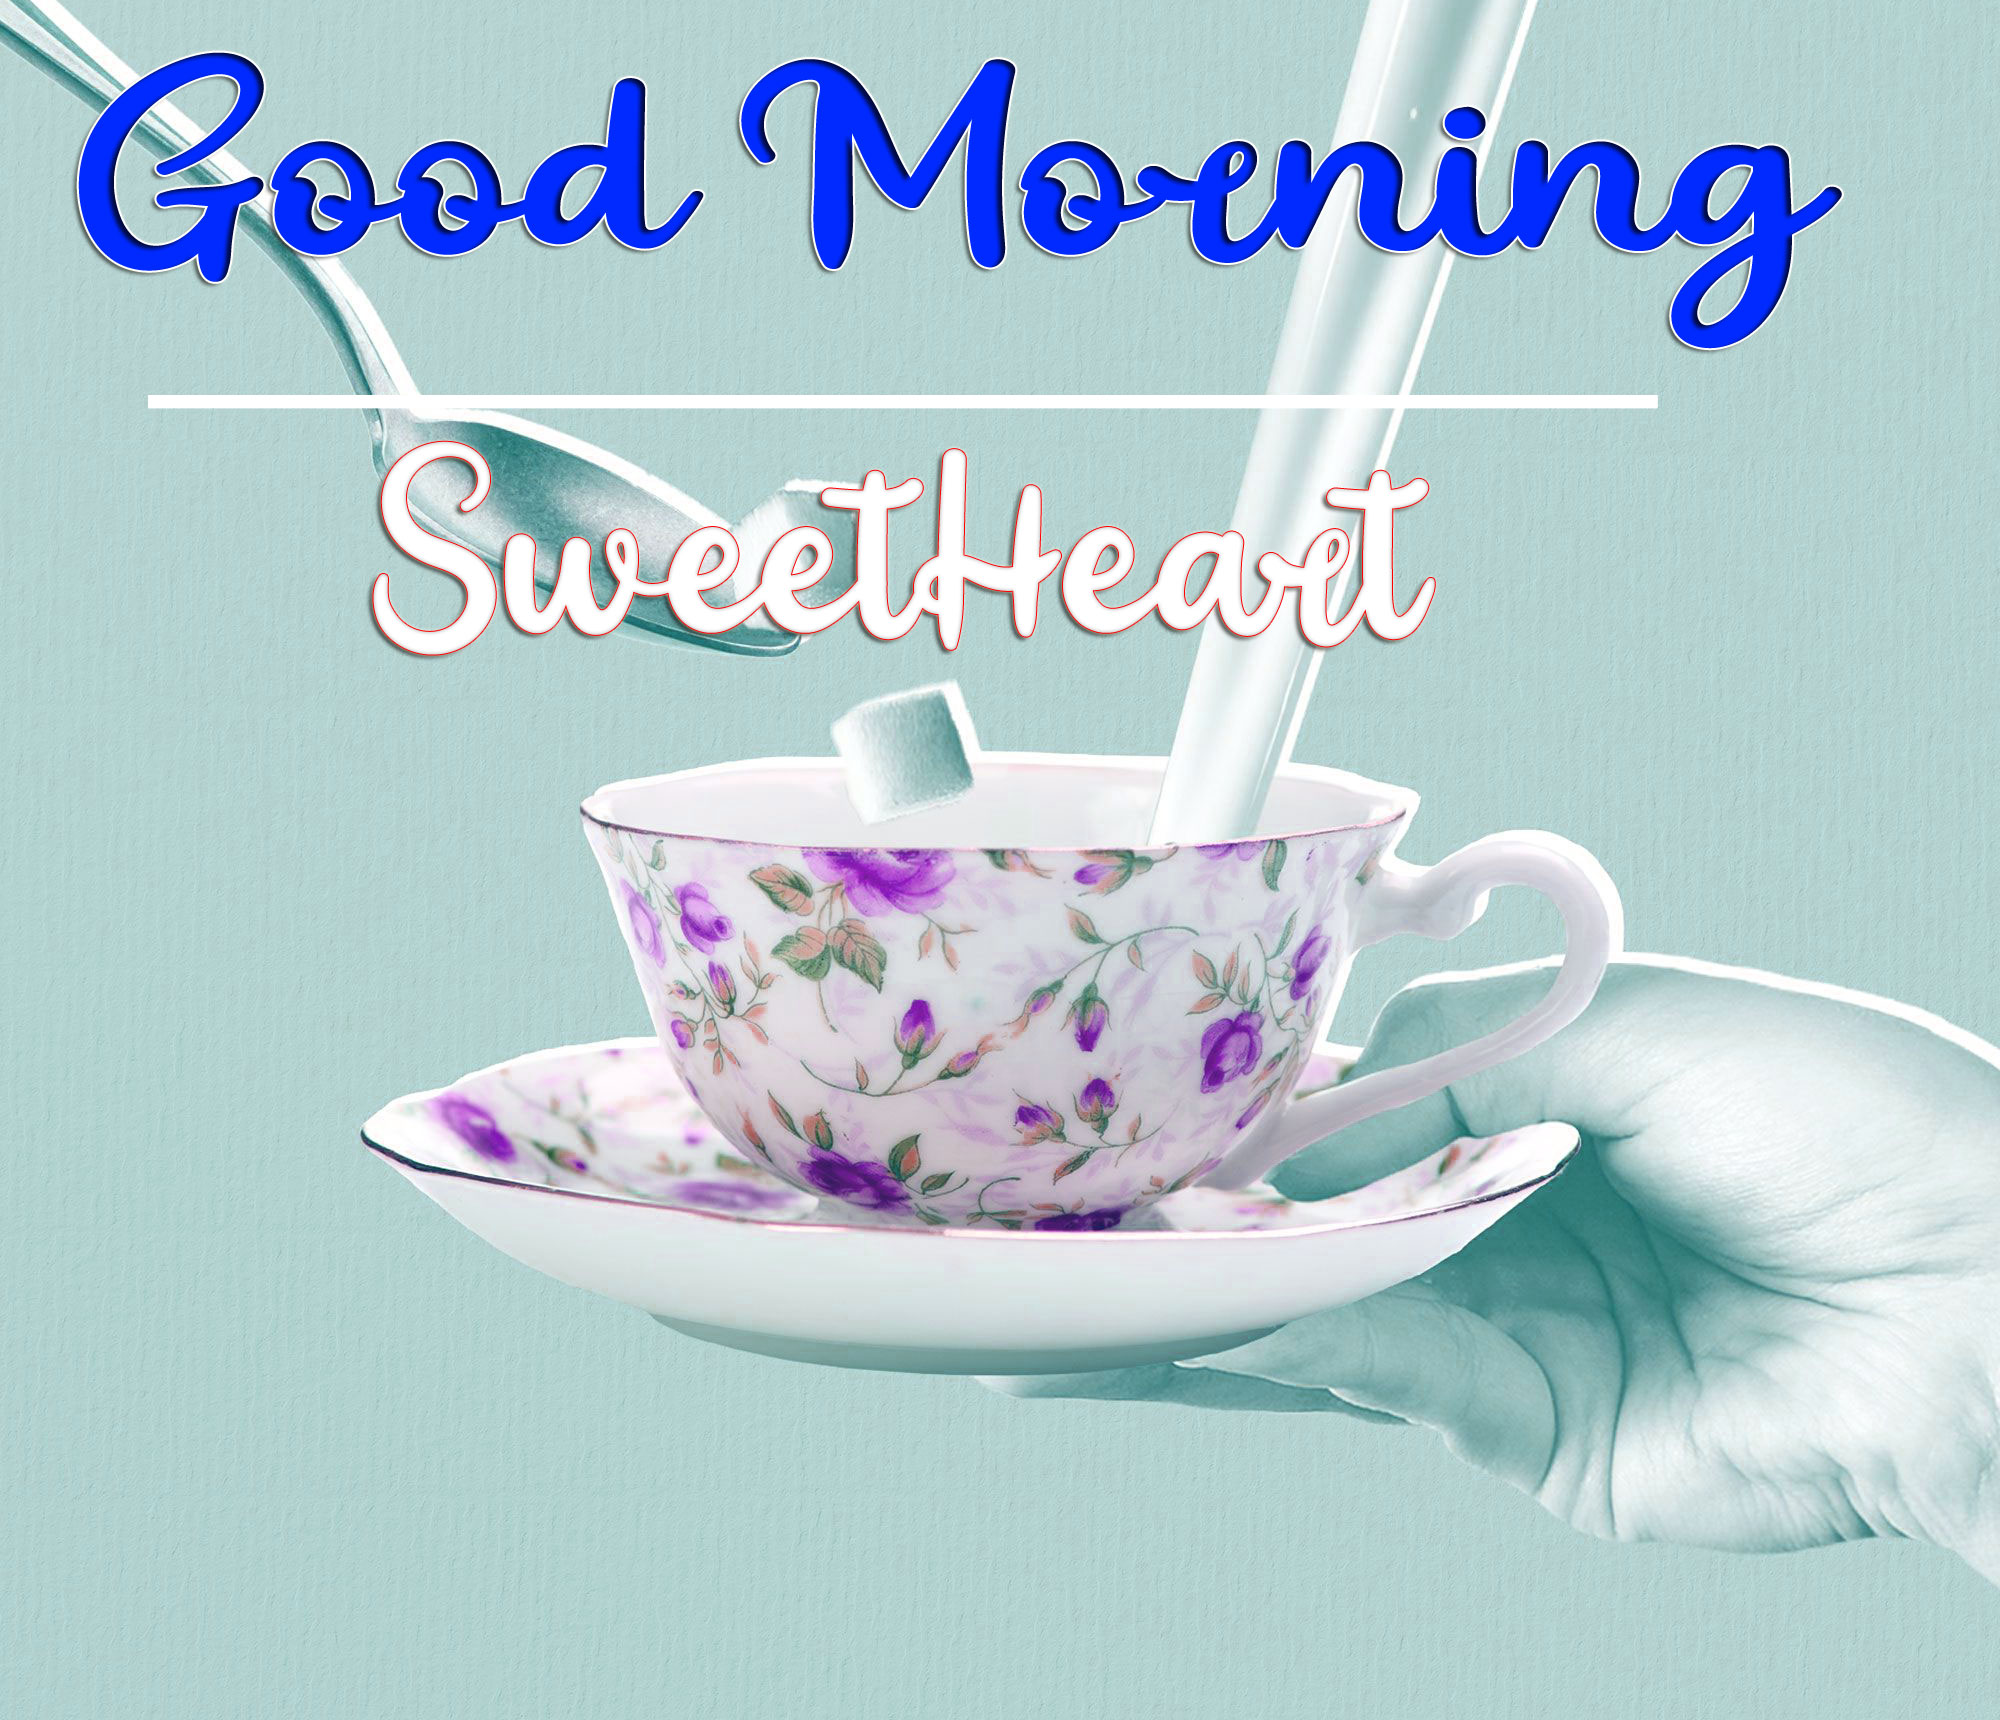 Good Morning Wishes Images HD 1080p 22